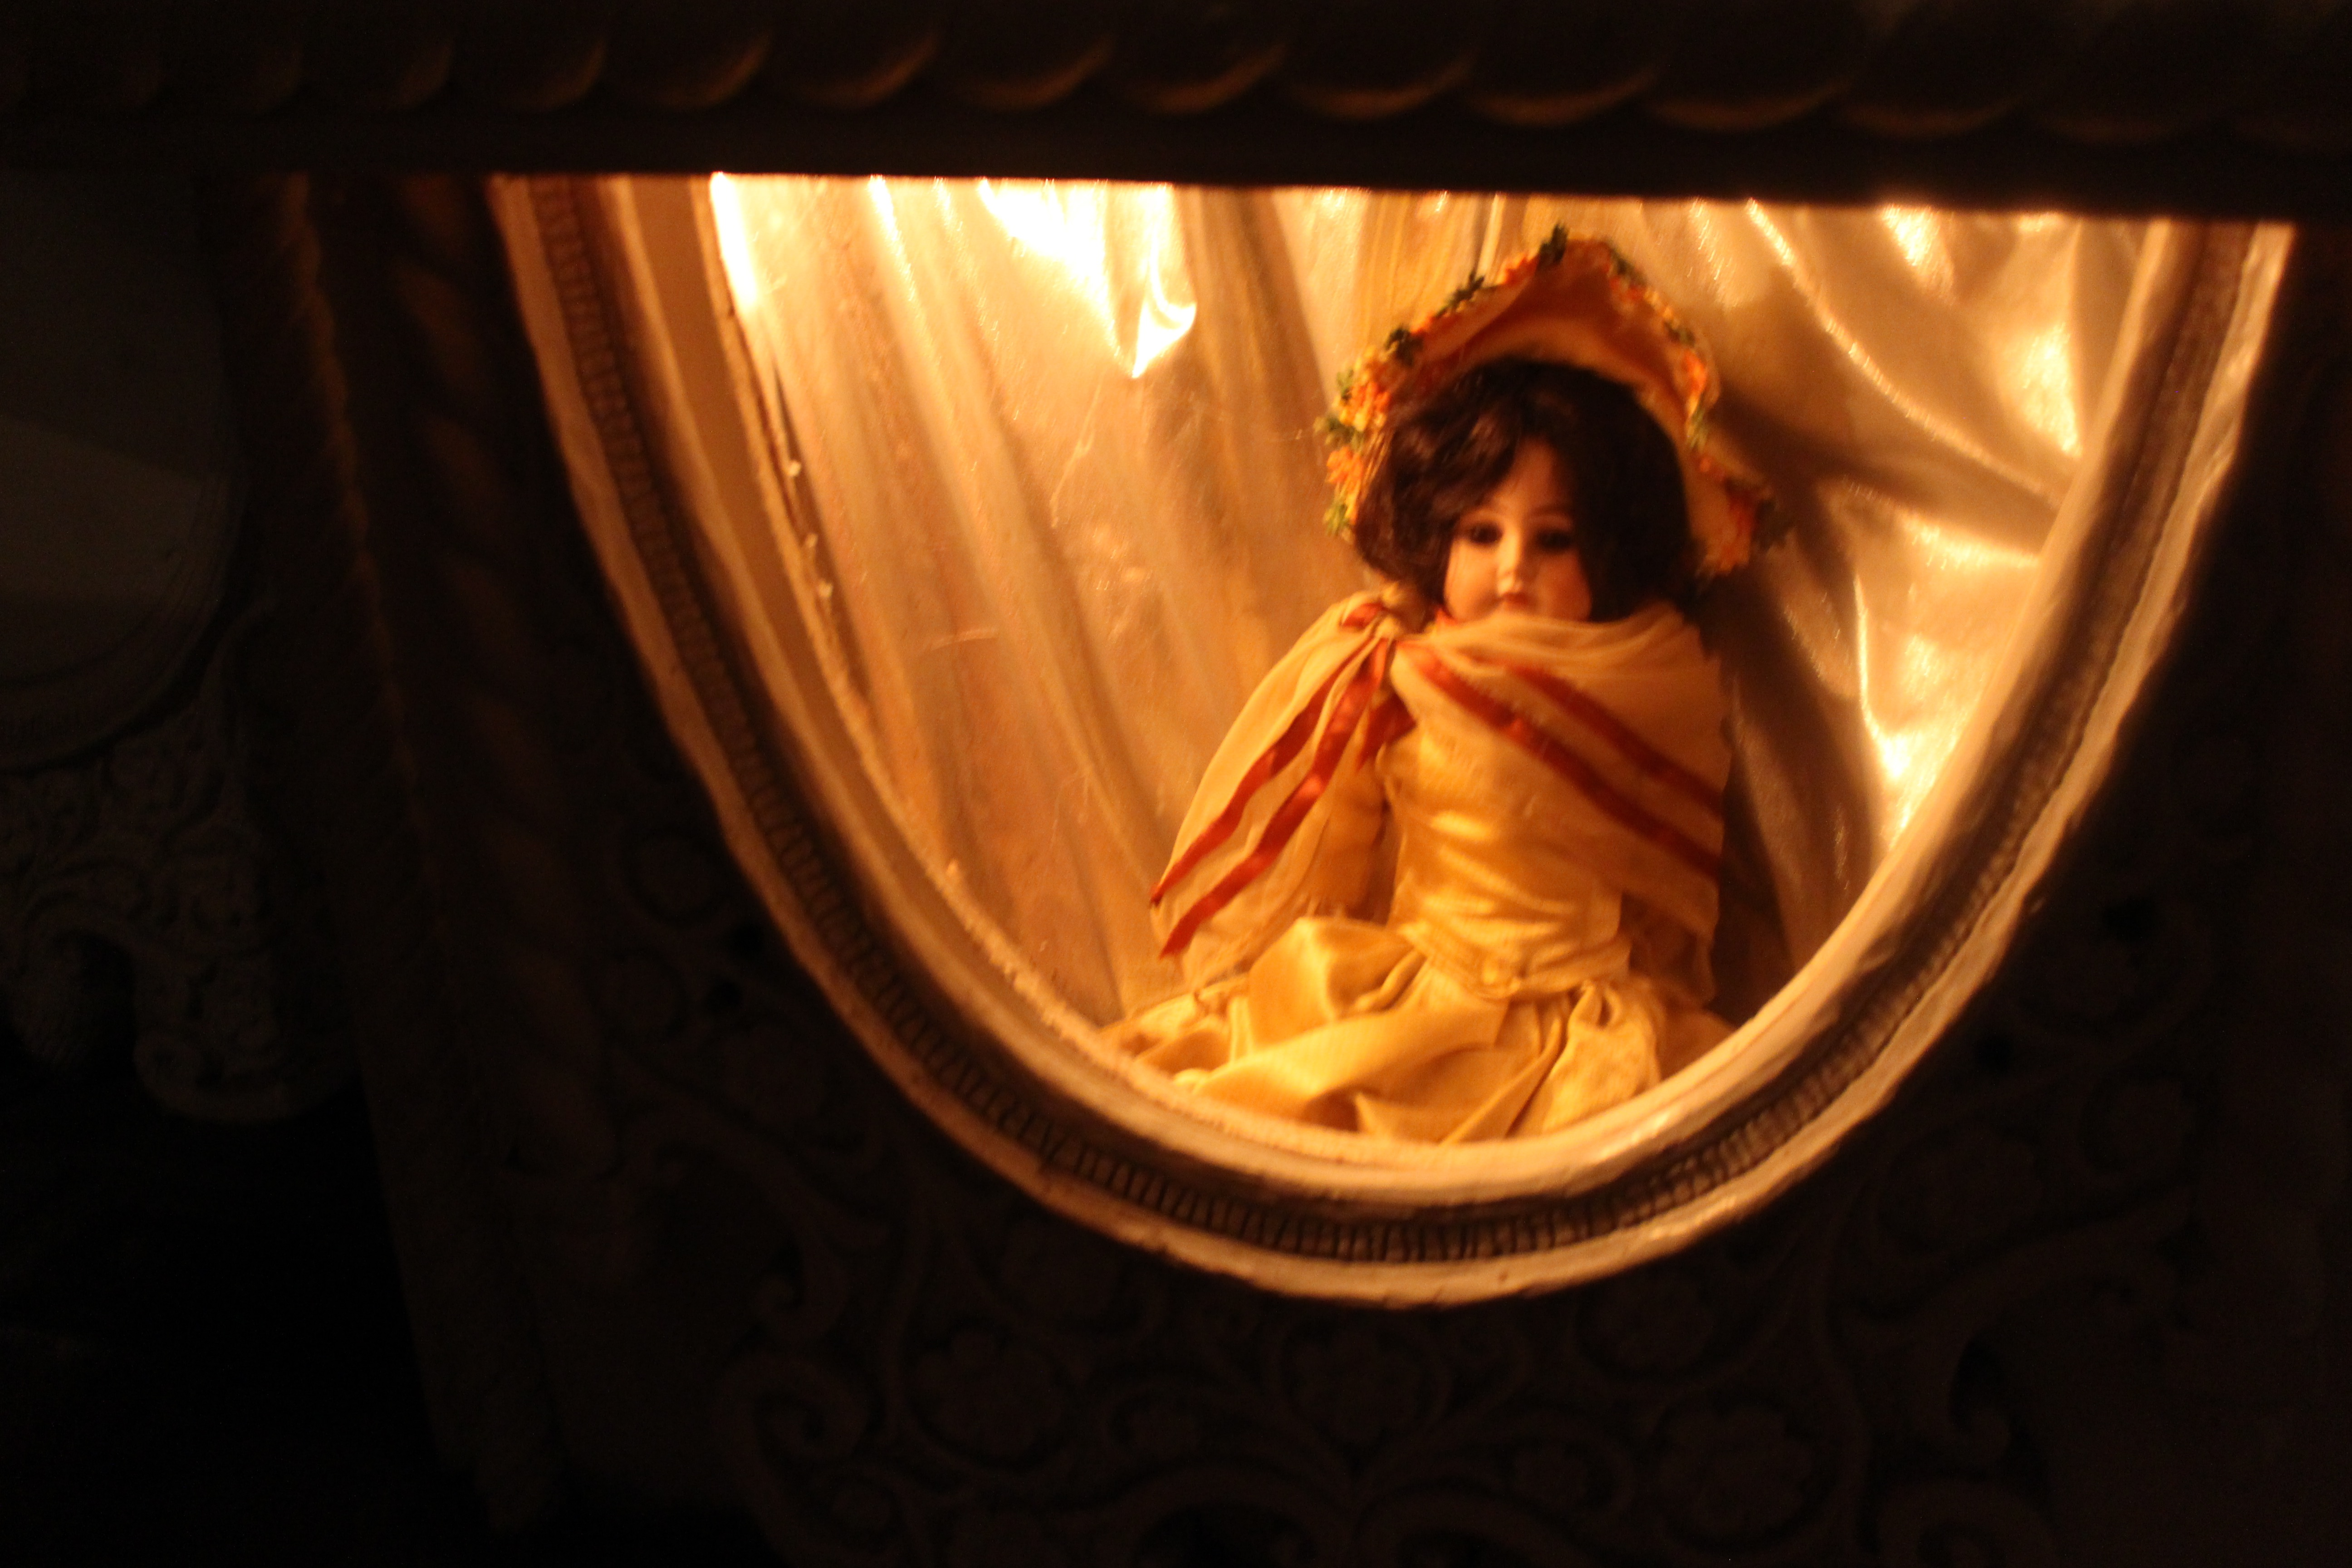 why is this doll trapped in this tiny room??